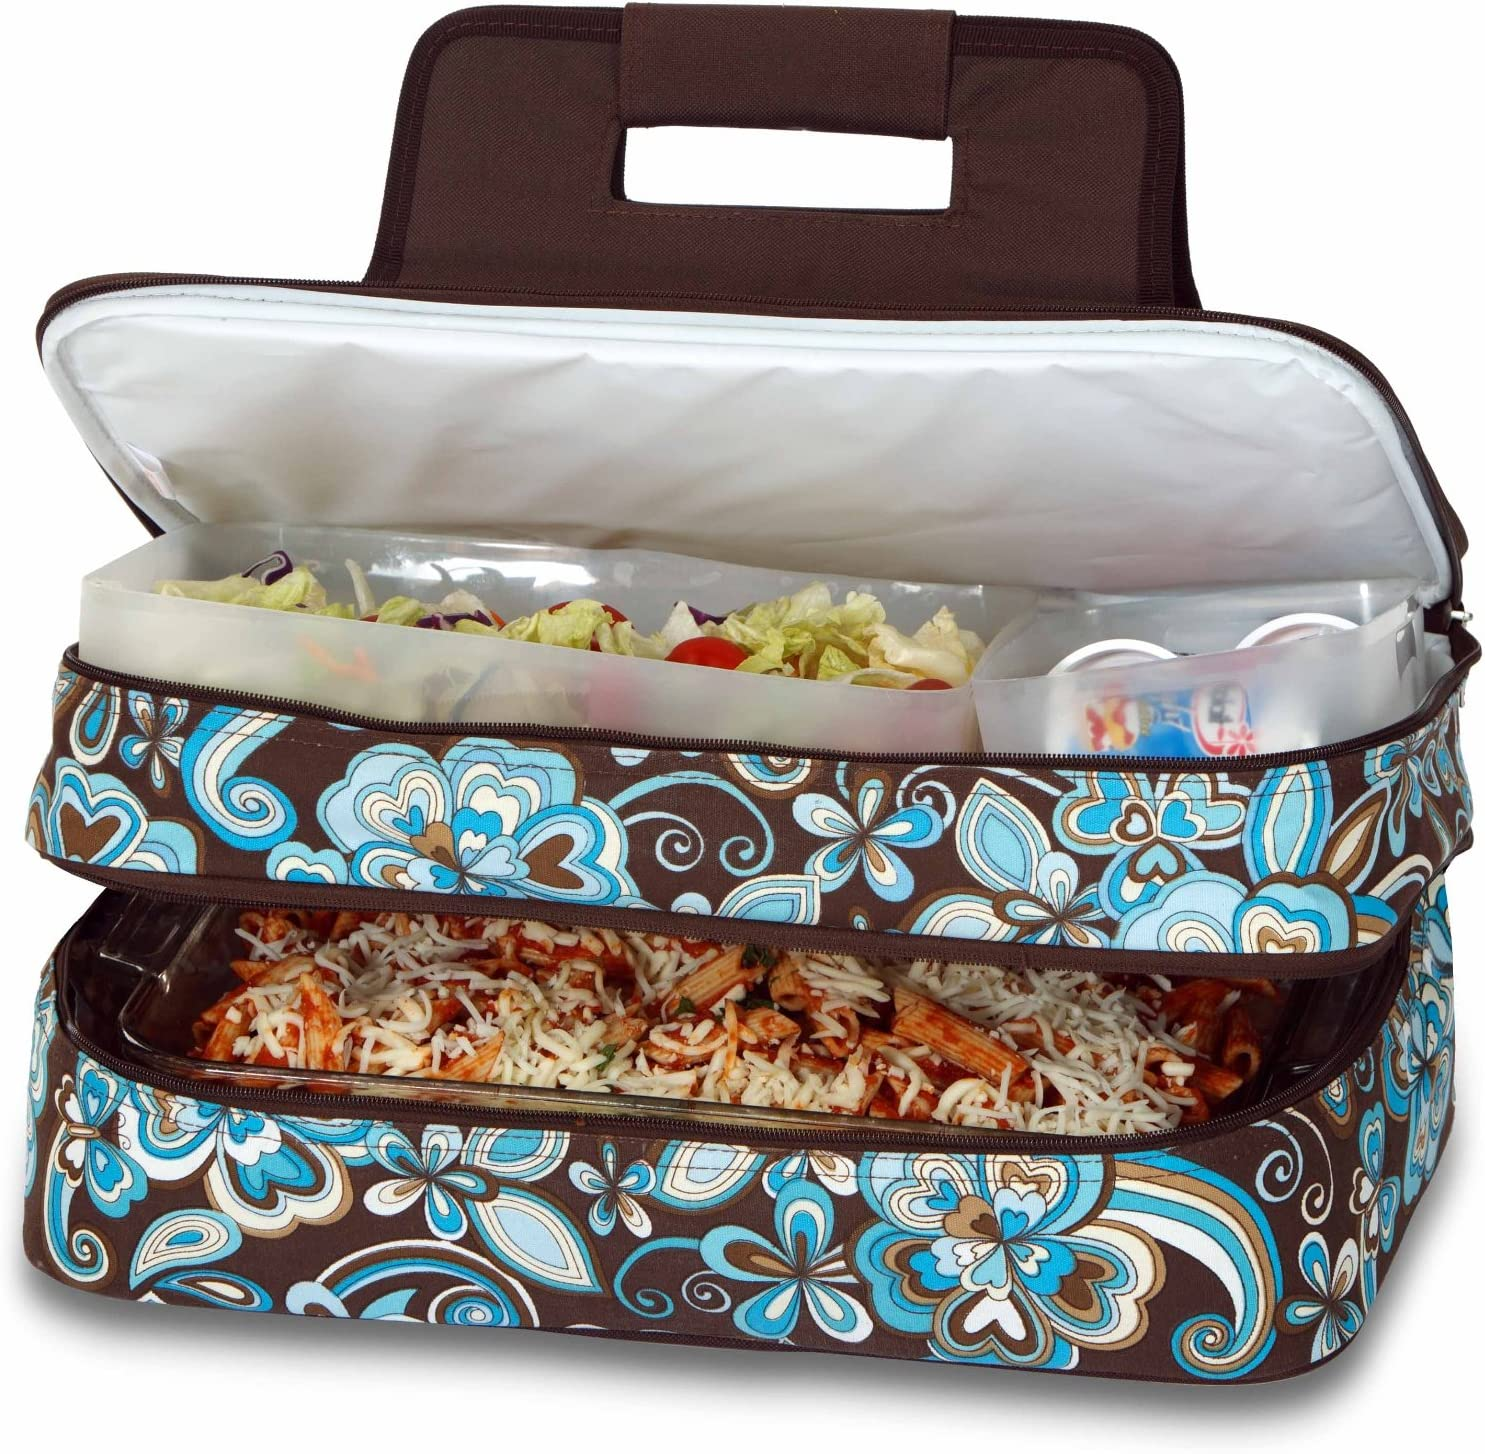 """Picnic Plus 18"""" Casserole Carrier 2 Level Thermal Insulated Hot and Cold Food Carrier Double Layer Food Carrier Bag Potluck Carrier With Bonus Containers (Cocoa Cosmos)"""